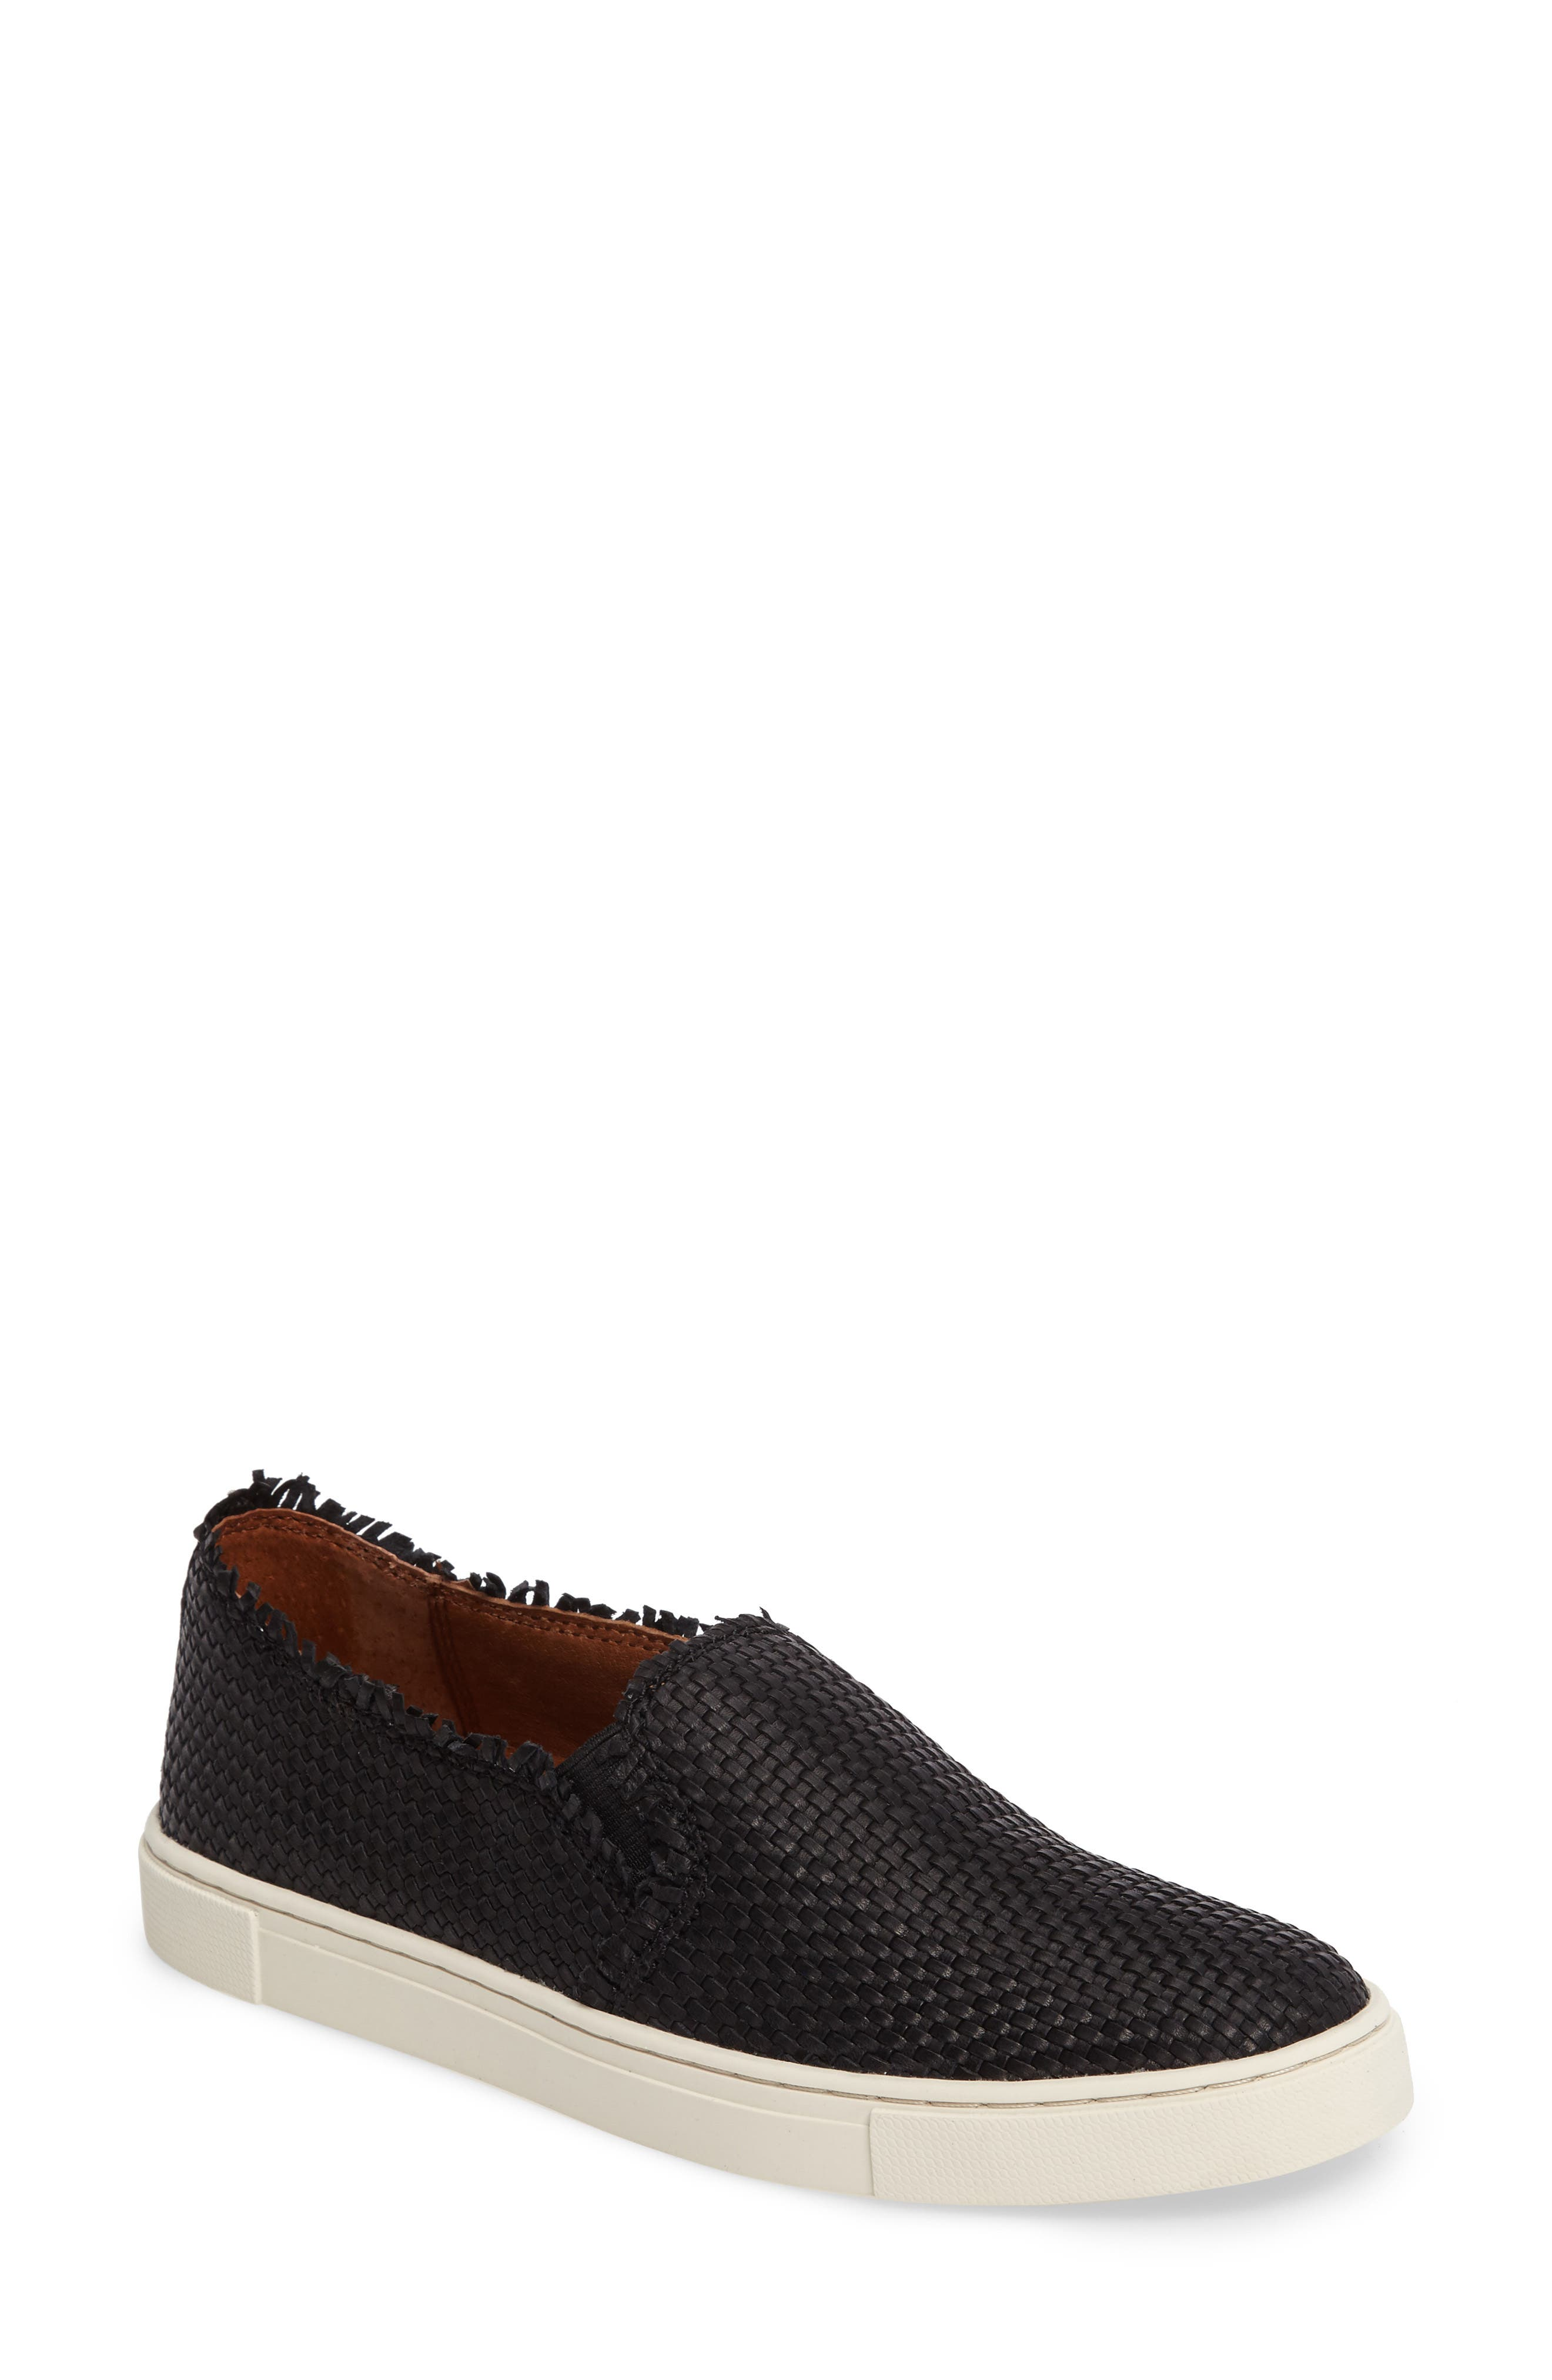 Ivy Fray Woven Slip-On Sneaker,                         Main,                         color, 001